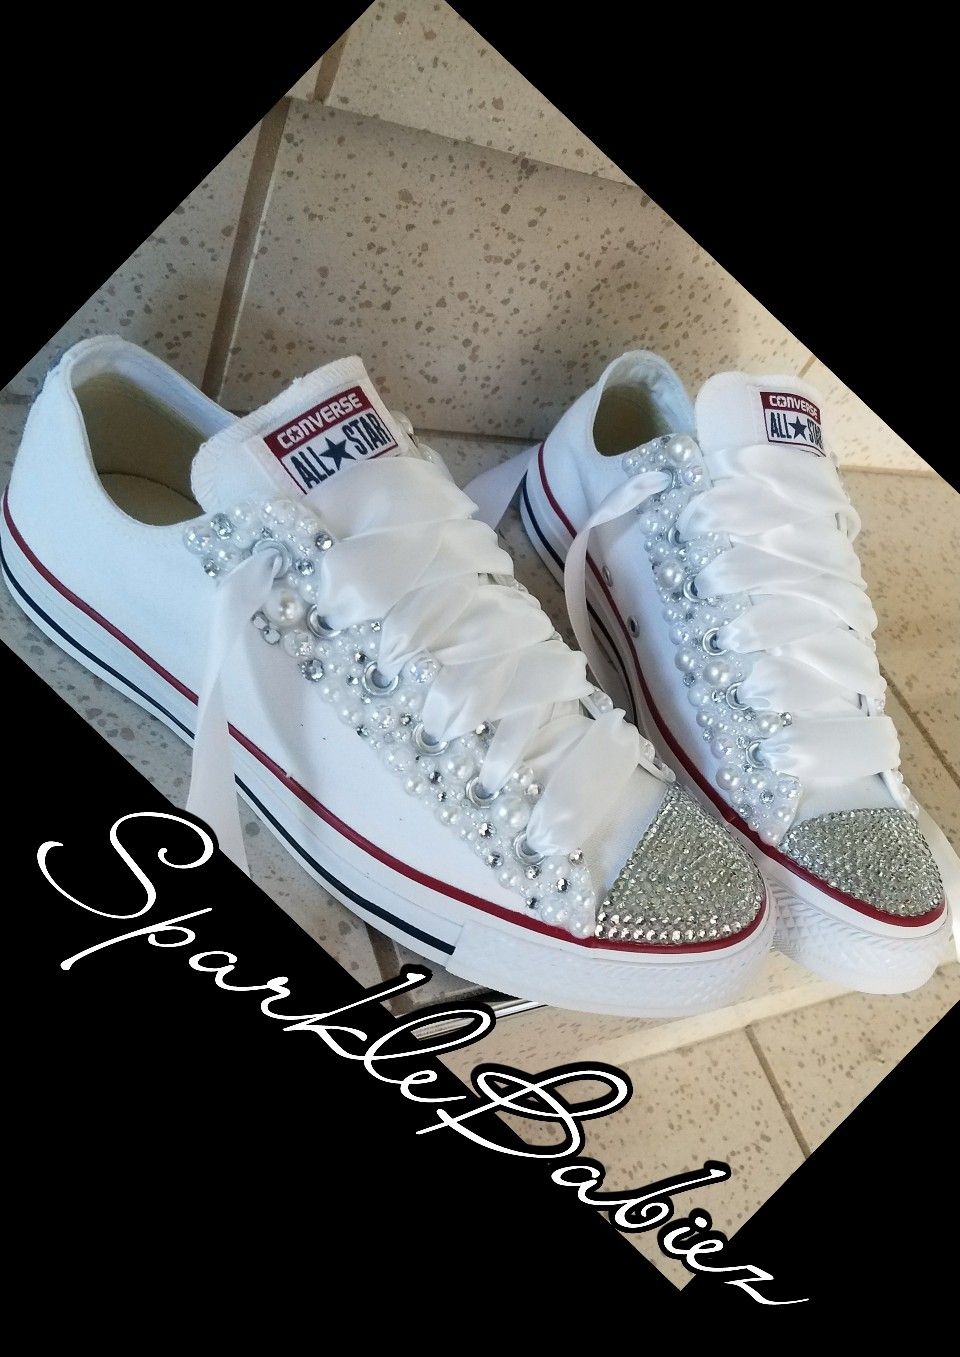 d5e6be163865c Bling & Pearl Chuck Taylor All Star Converse Wedding Bridal Shoes ...